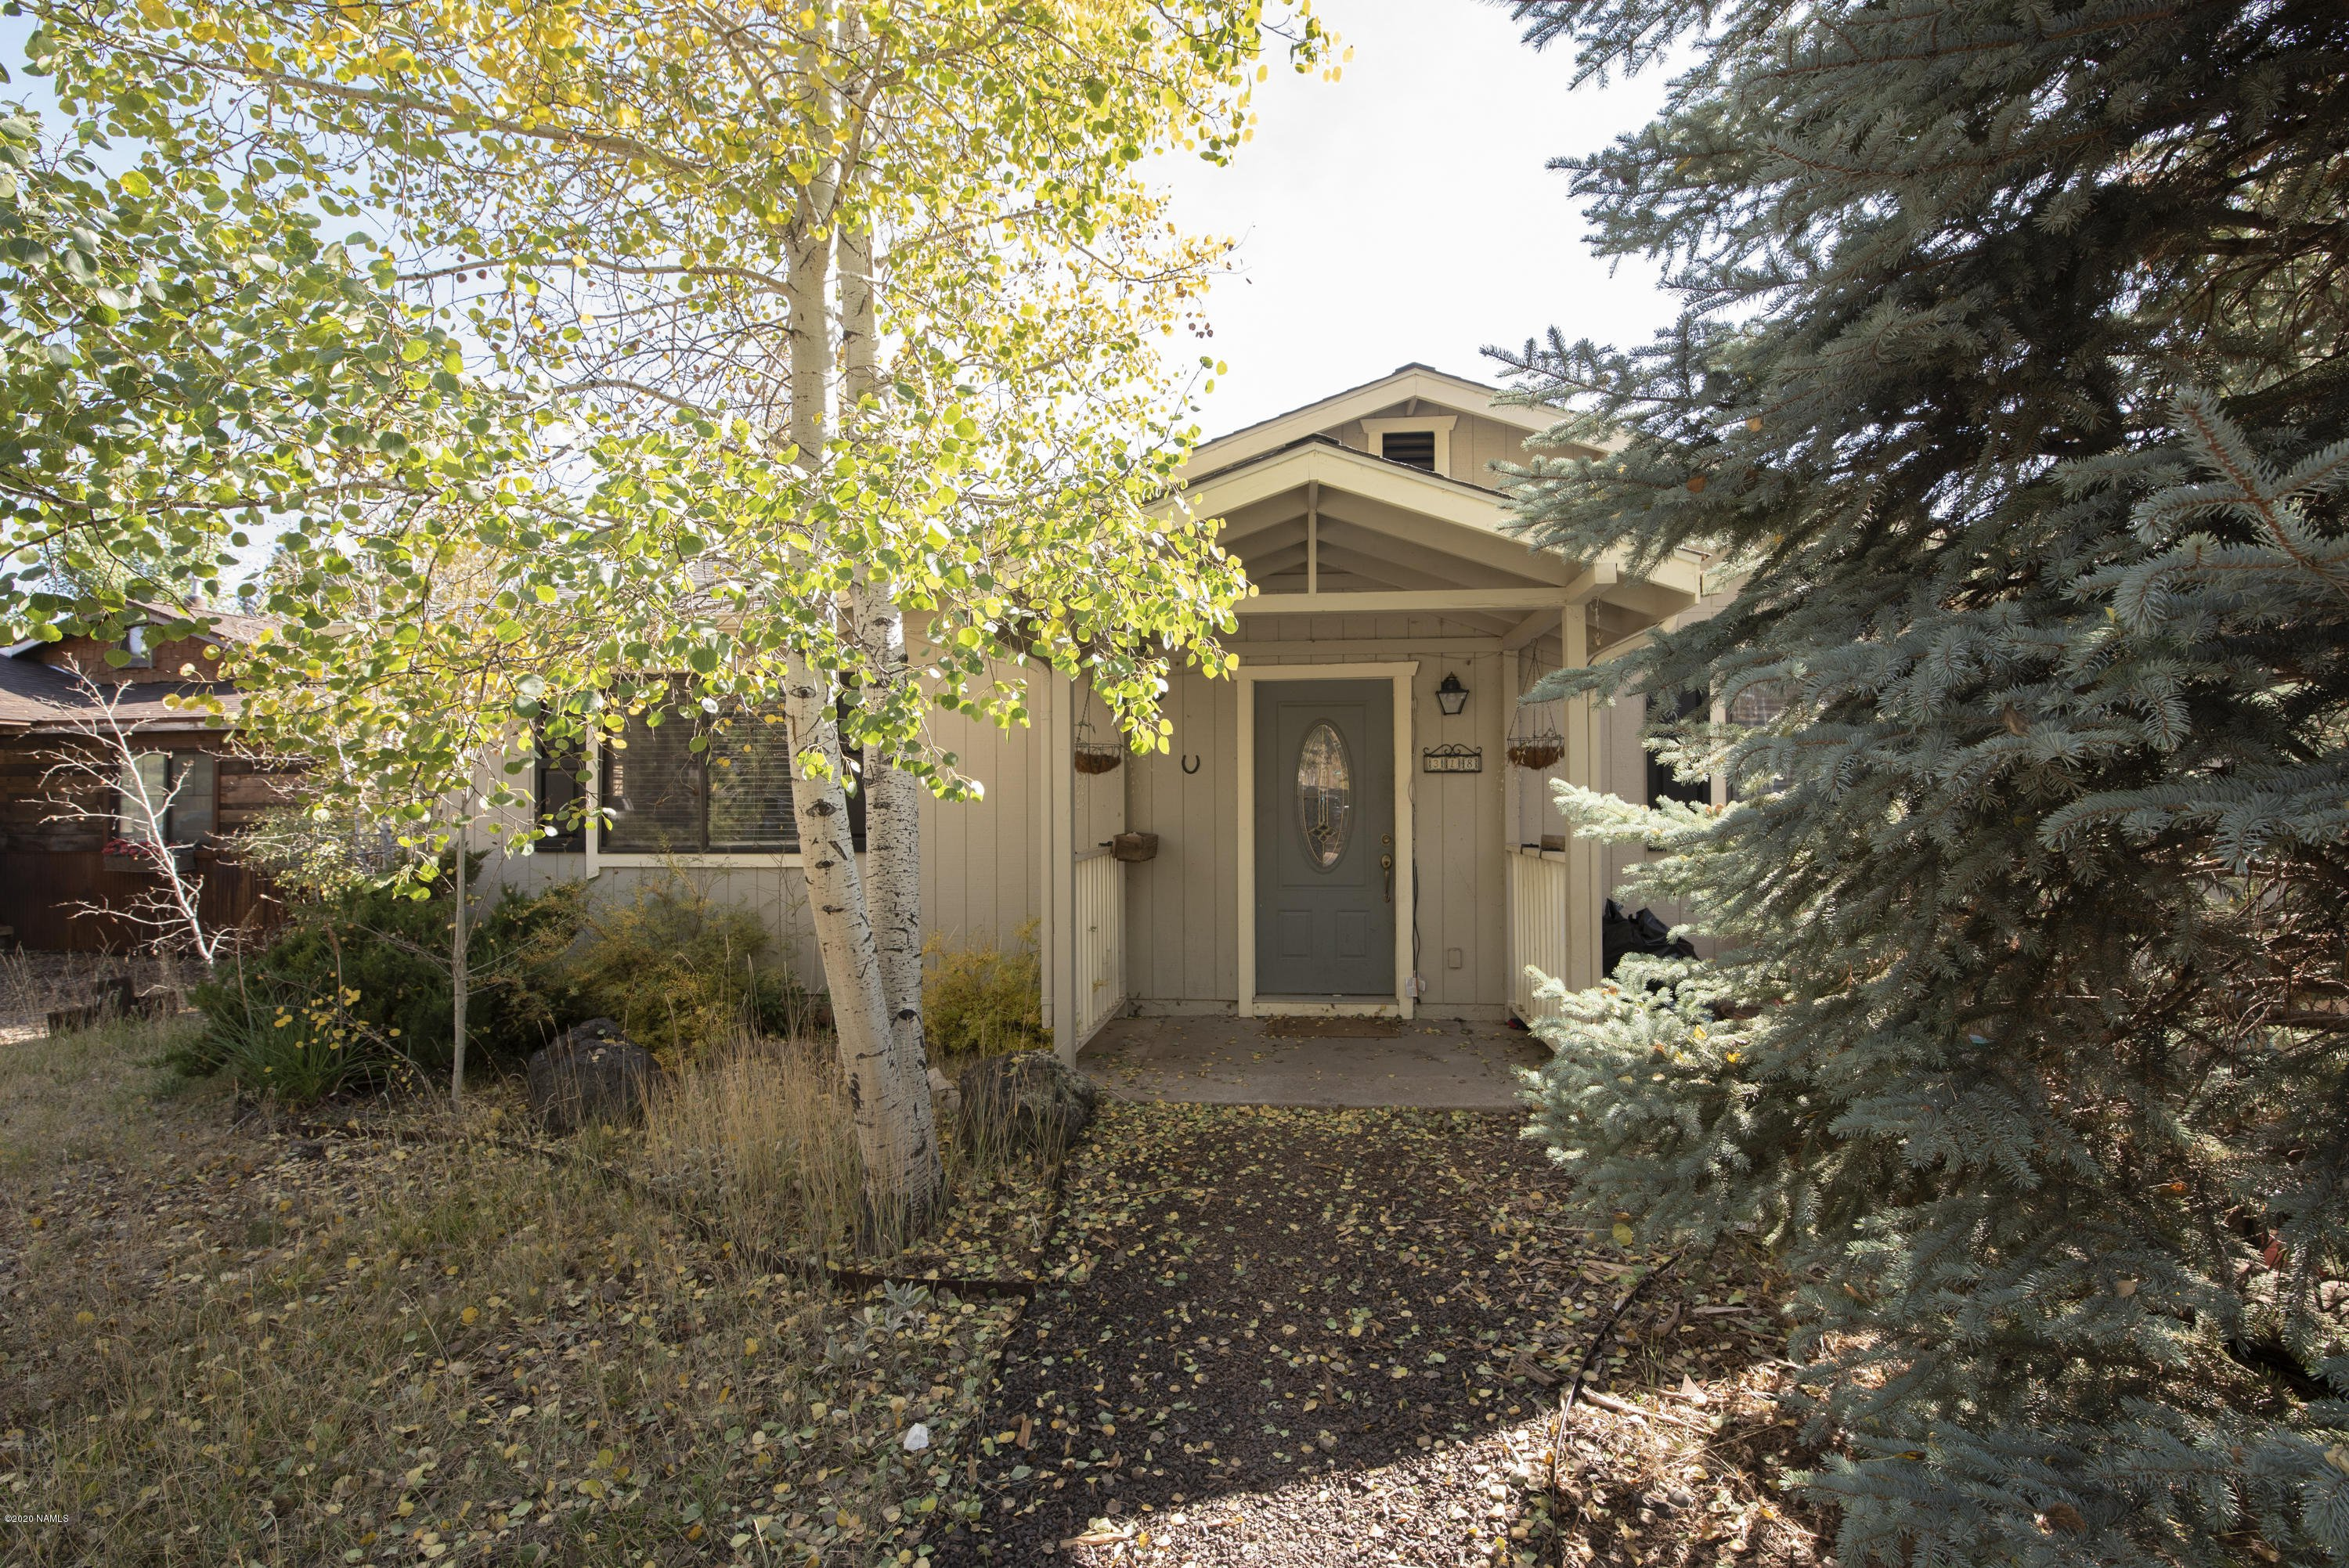 Lowest Priced Single Family Flagstaff Home in December 2020